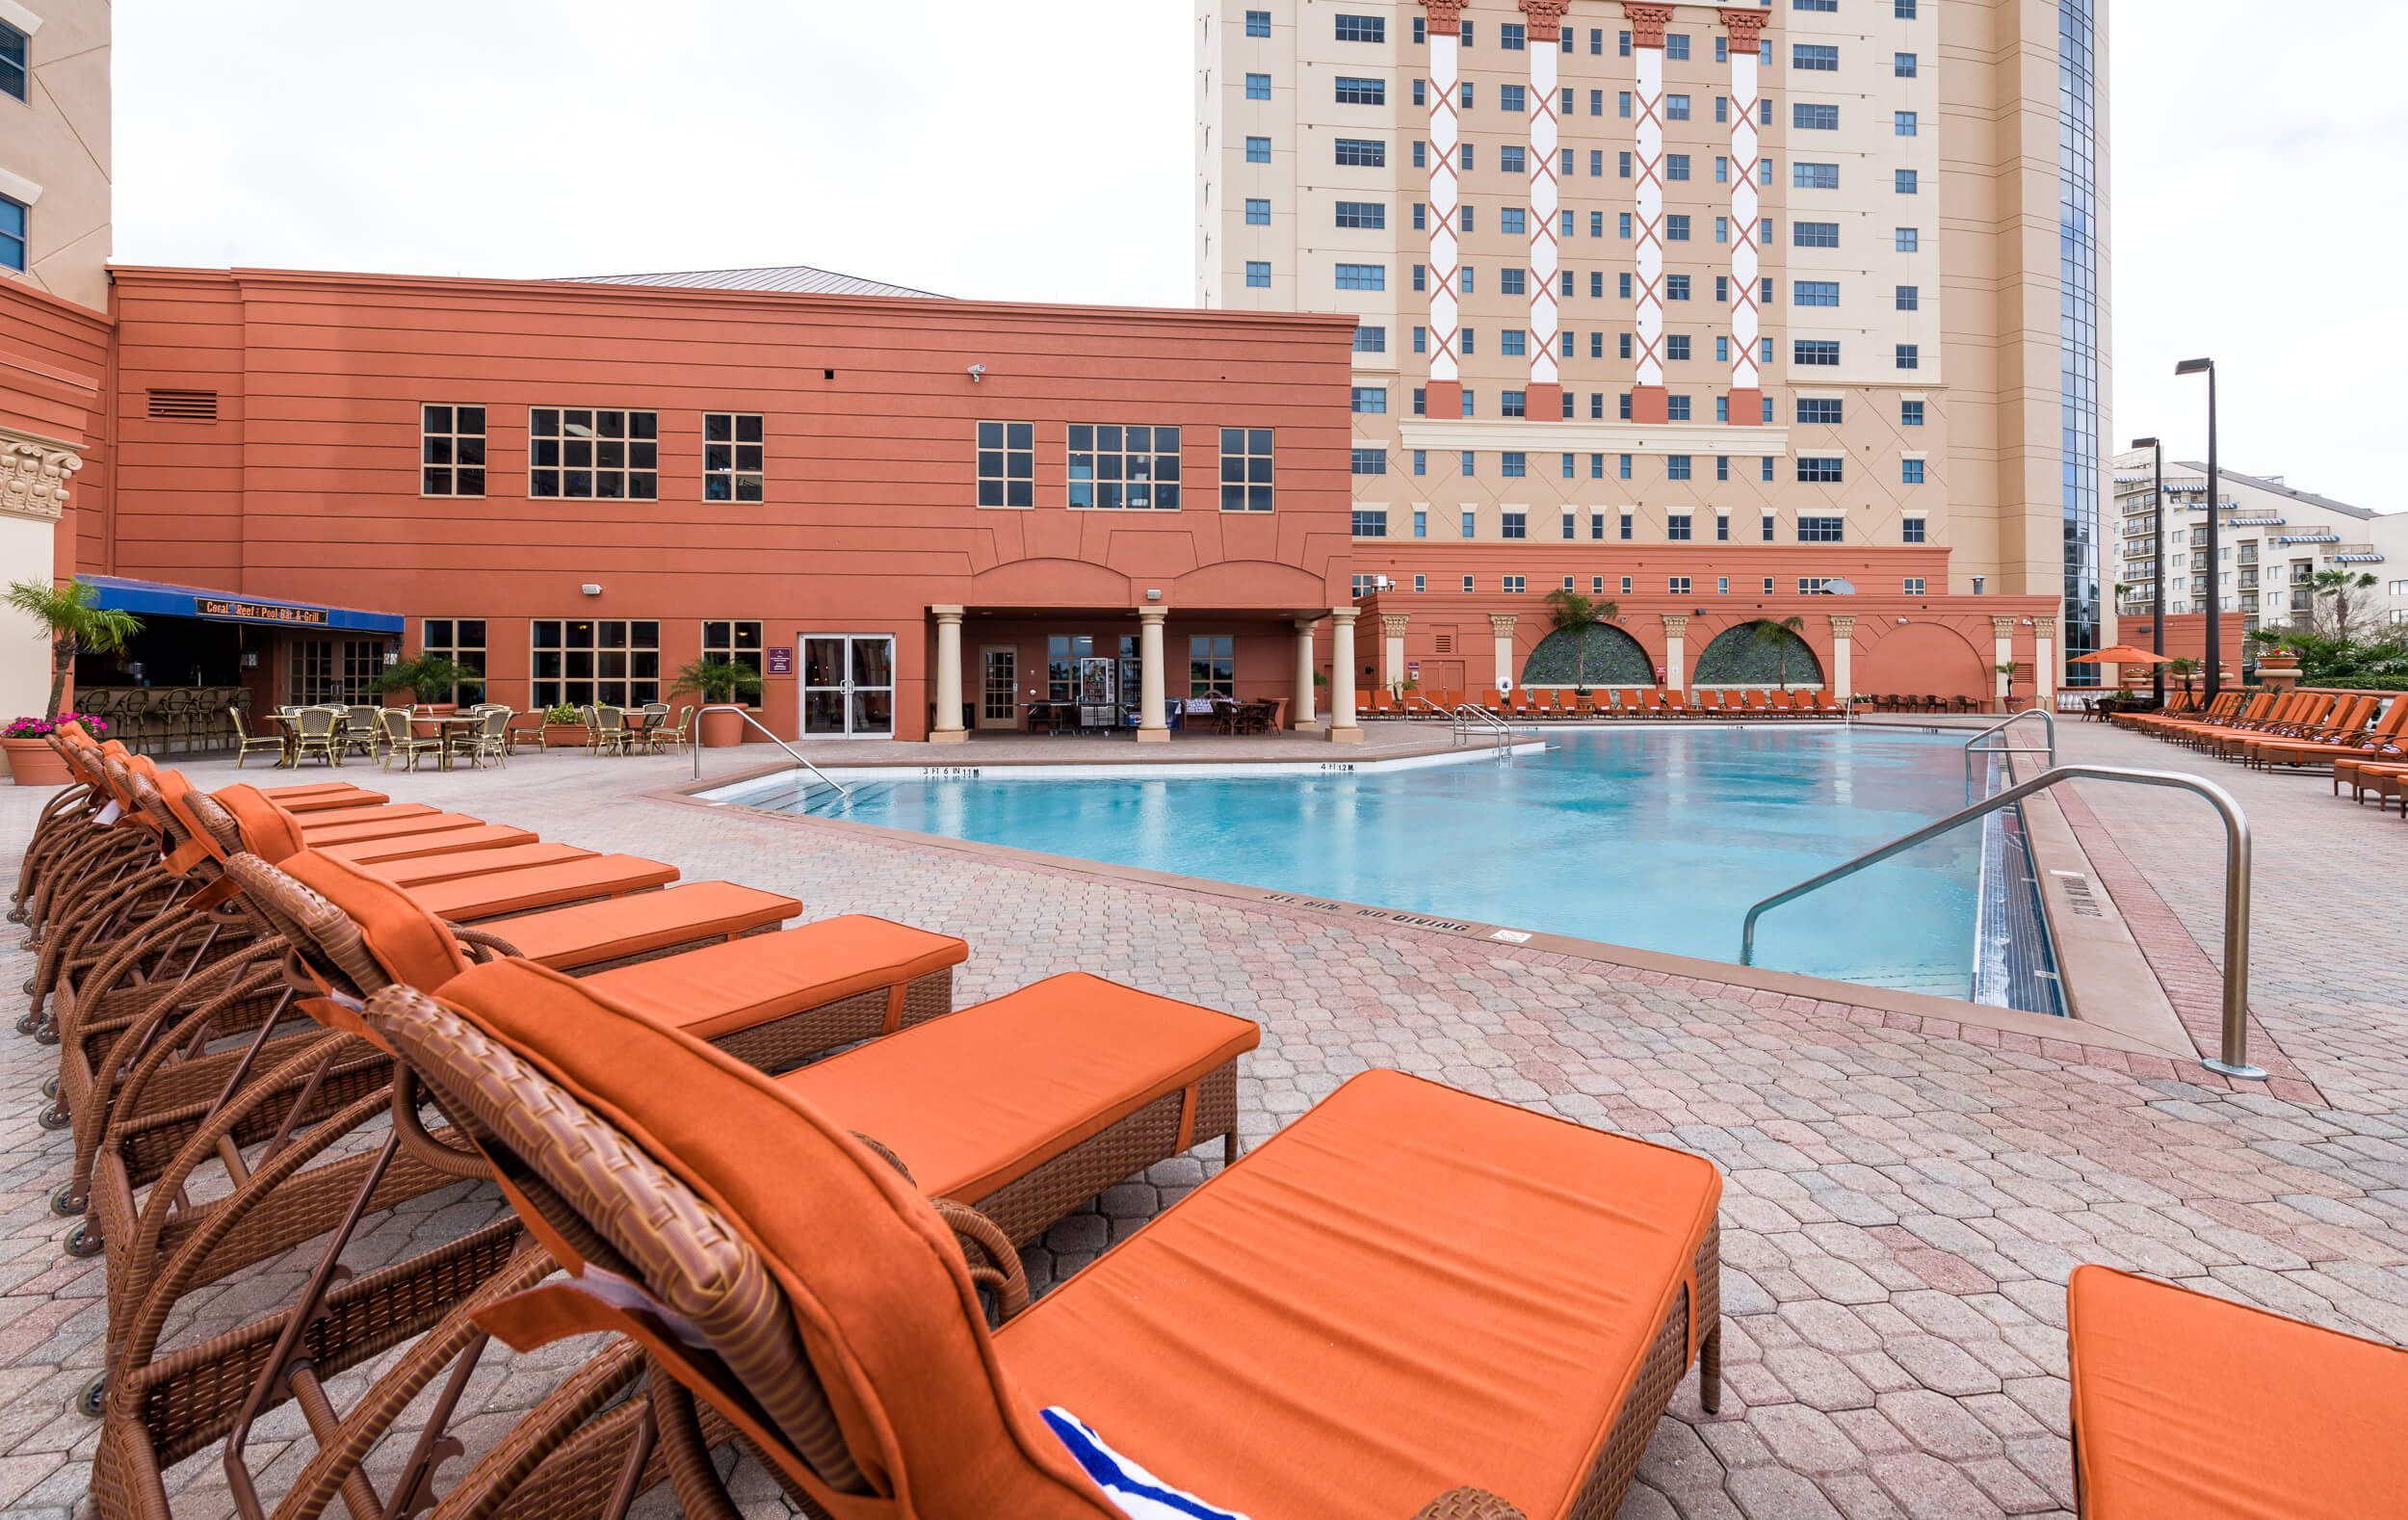 Pool Resorts in Orlando, FL 32819 | Hotels With Pools For Kids & Adults Near I Drive | Pool at Westgate Palace Resort